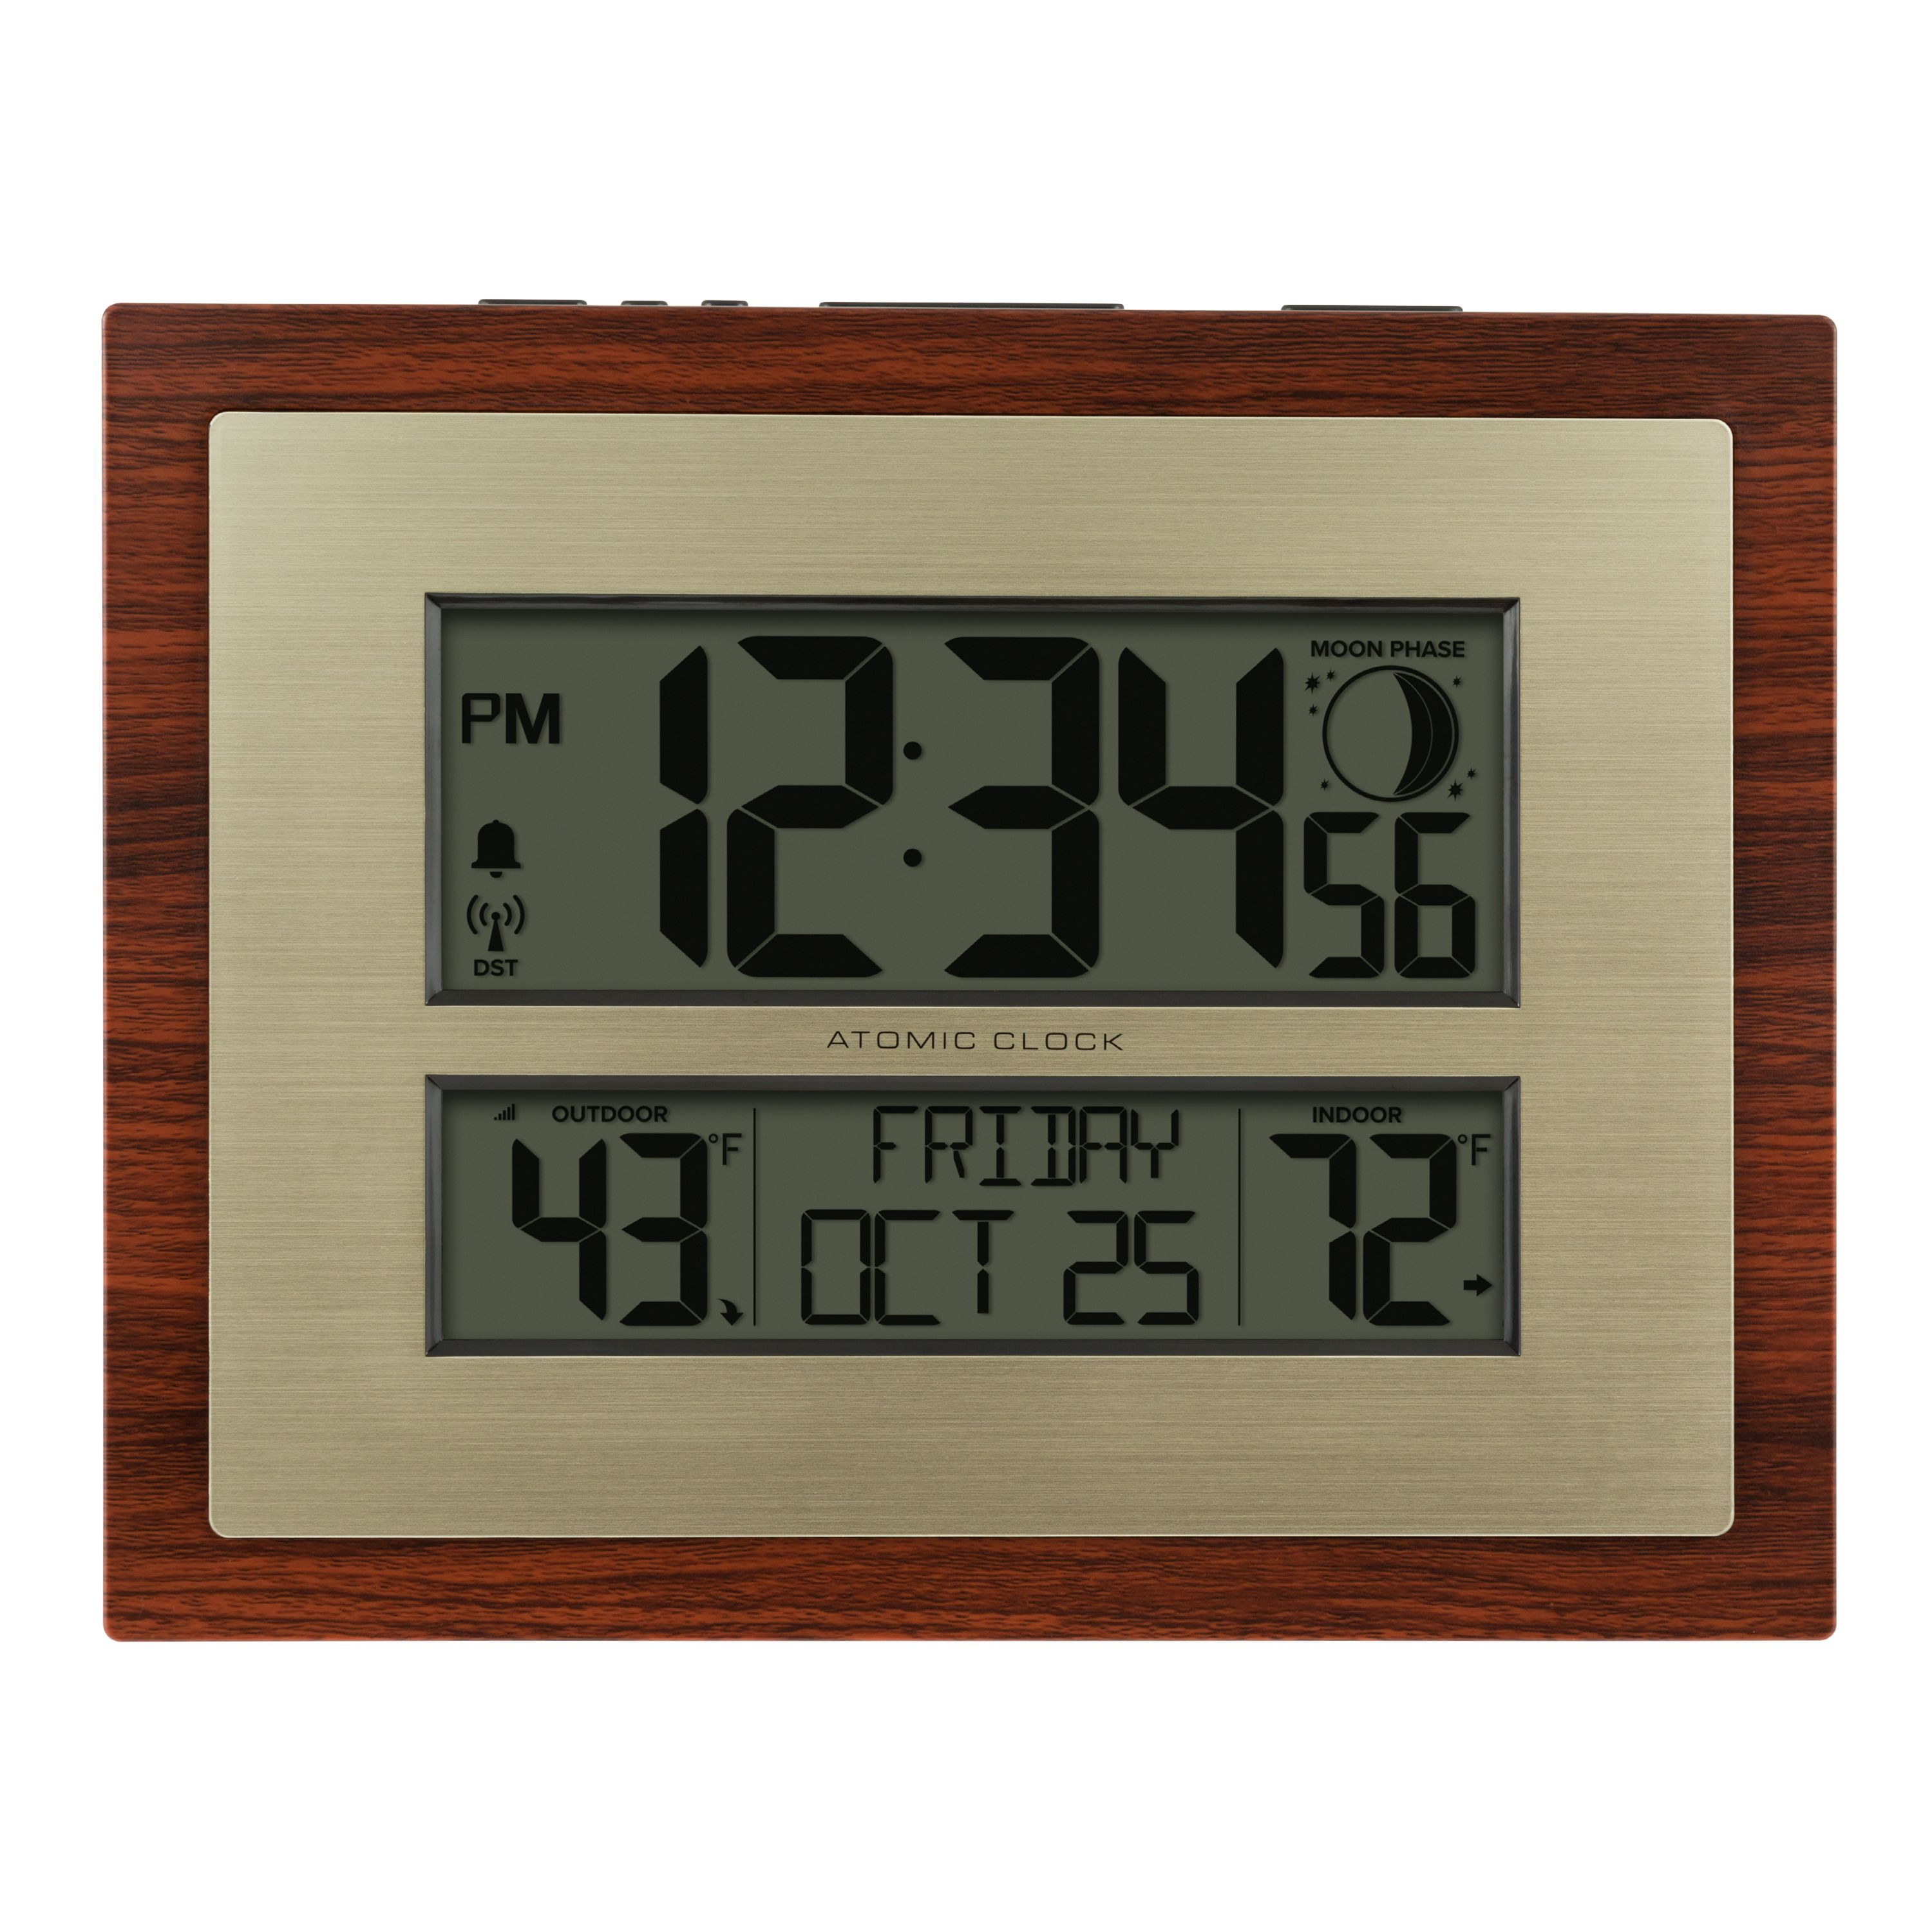 Better Homes & Gardens Atomic Digital Clock